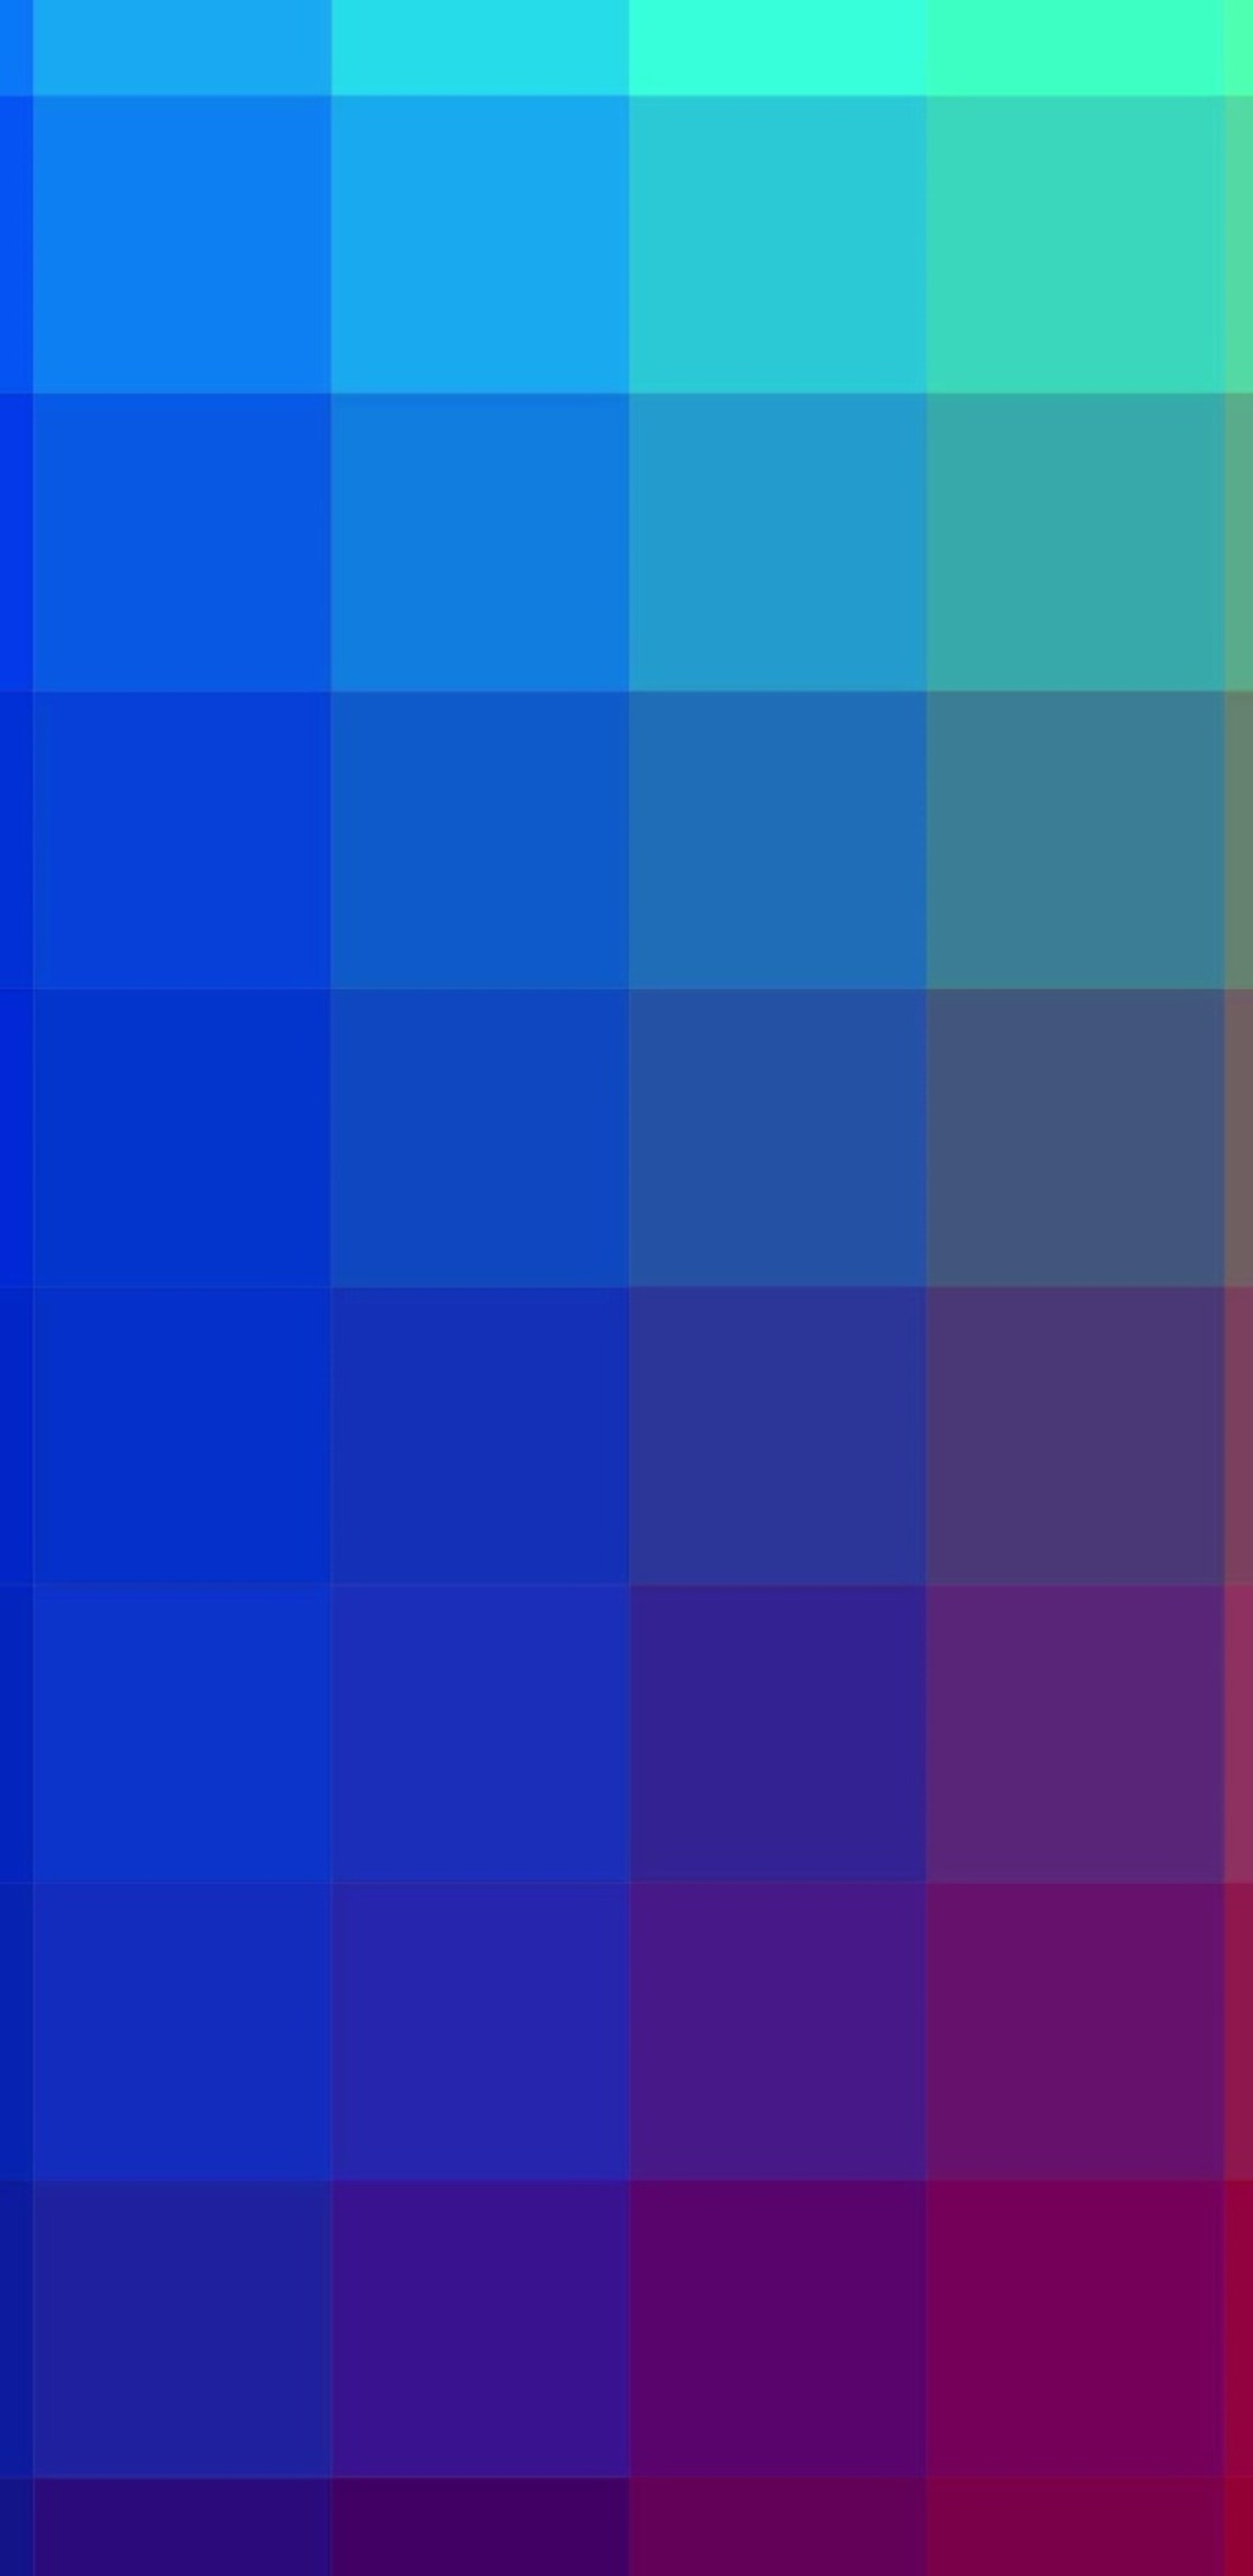 1440x2960 Abstract Colors Grid 4k Samsung Galaxy Note 9 8